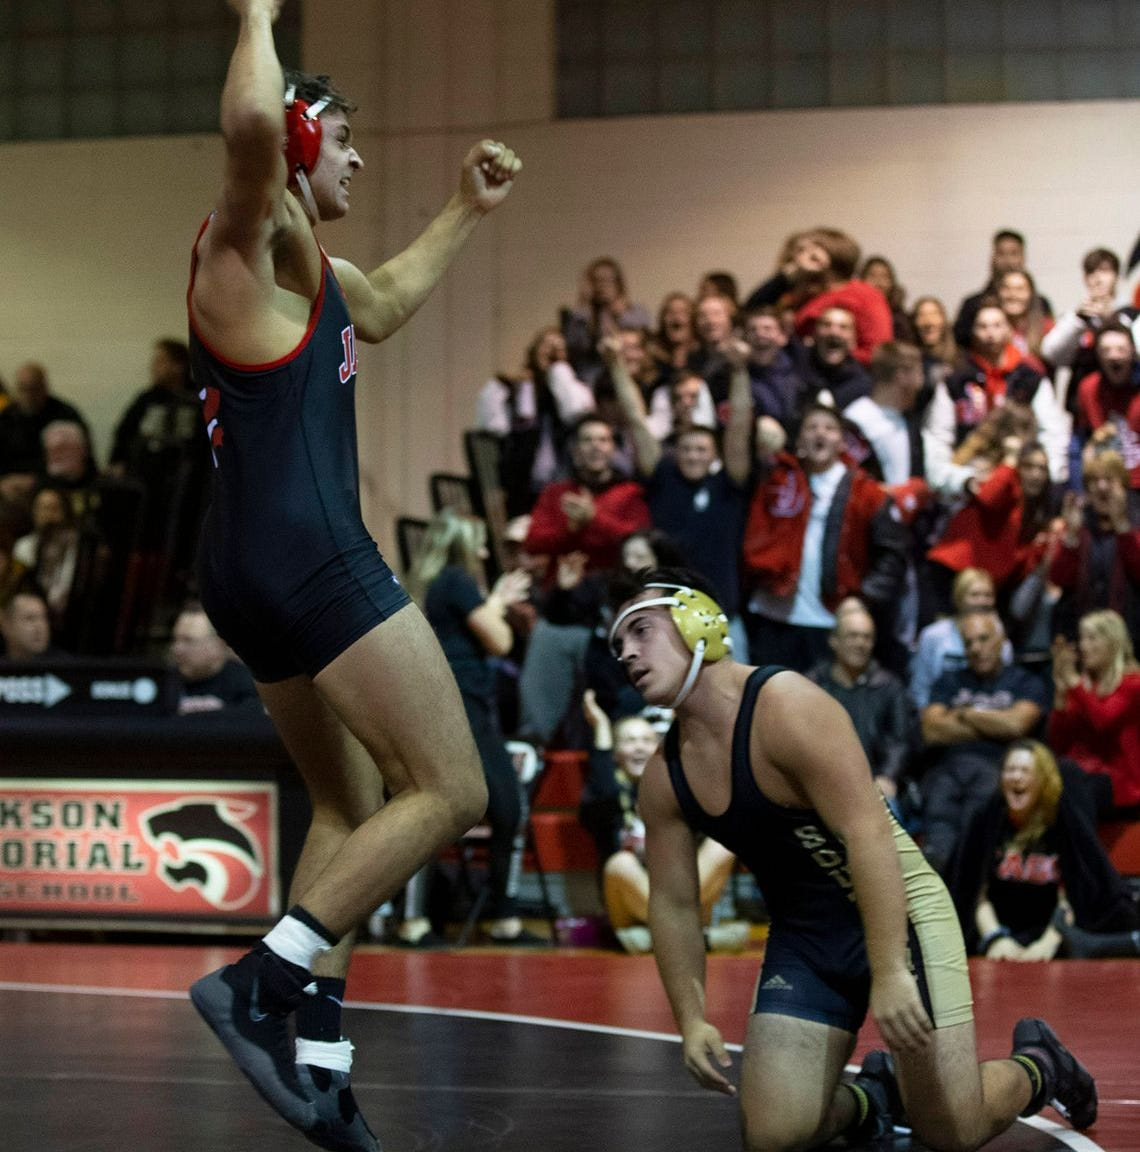 NJ wrestling: Kyle Epperly, Dean Peterson win titles at Sam Cali Tournament